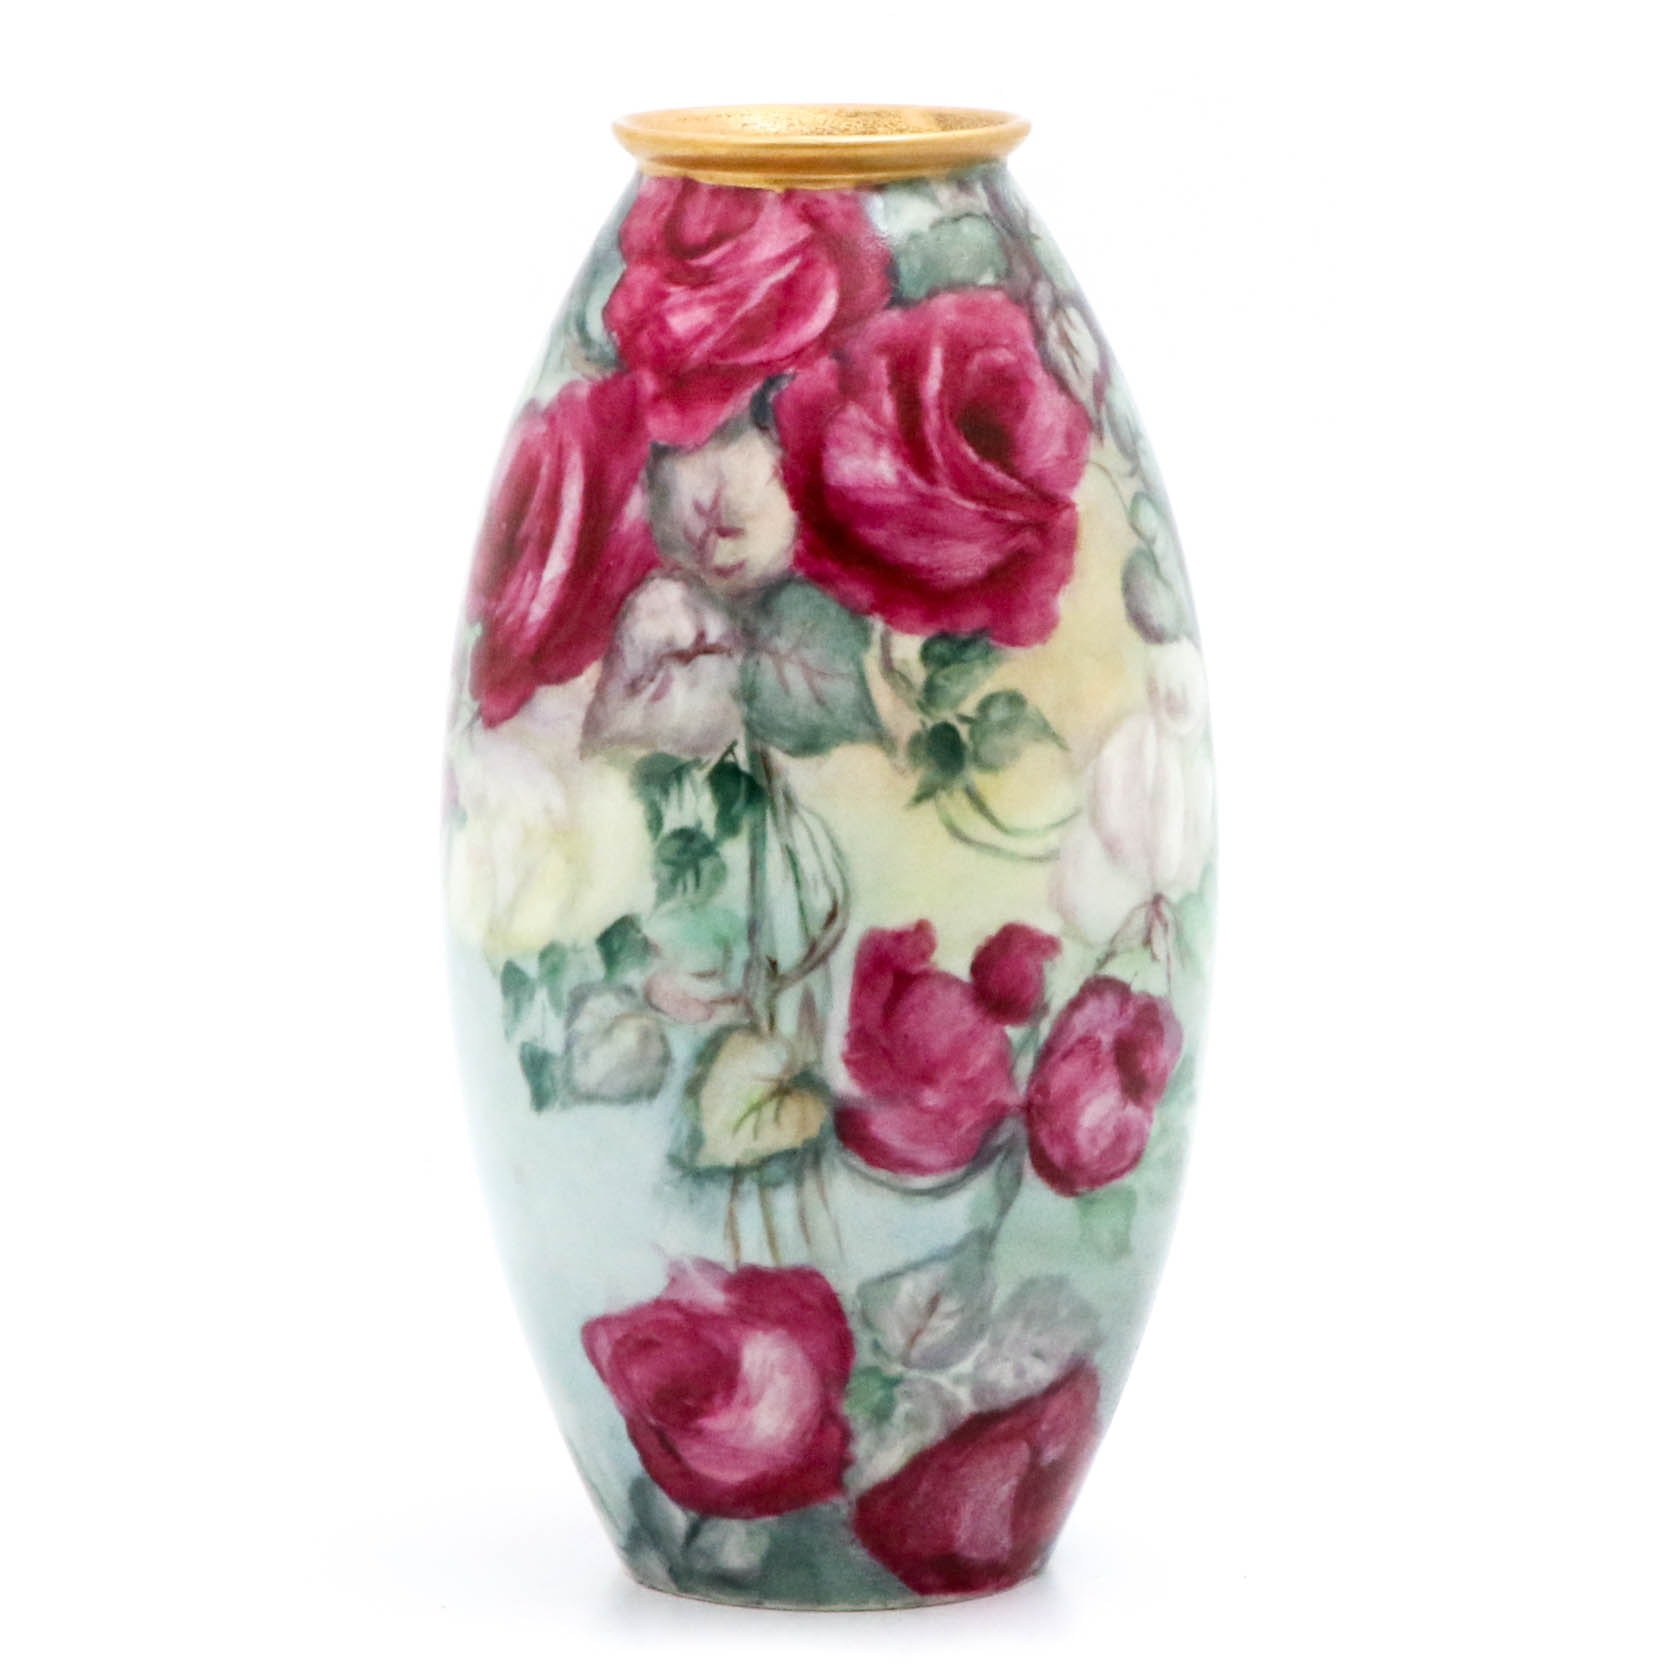 Belleek Willets Hand-Painted Roses Vase, Early 20th Century